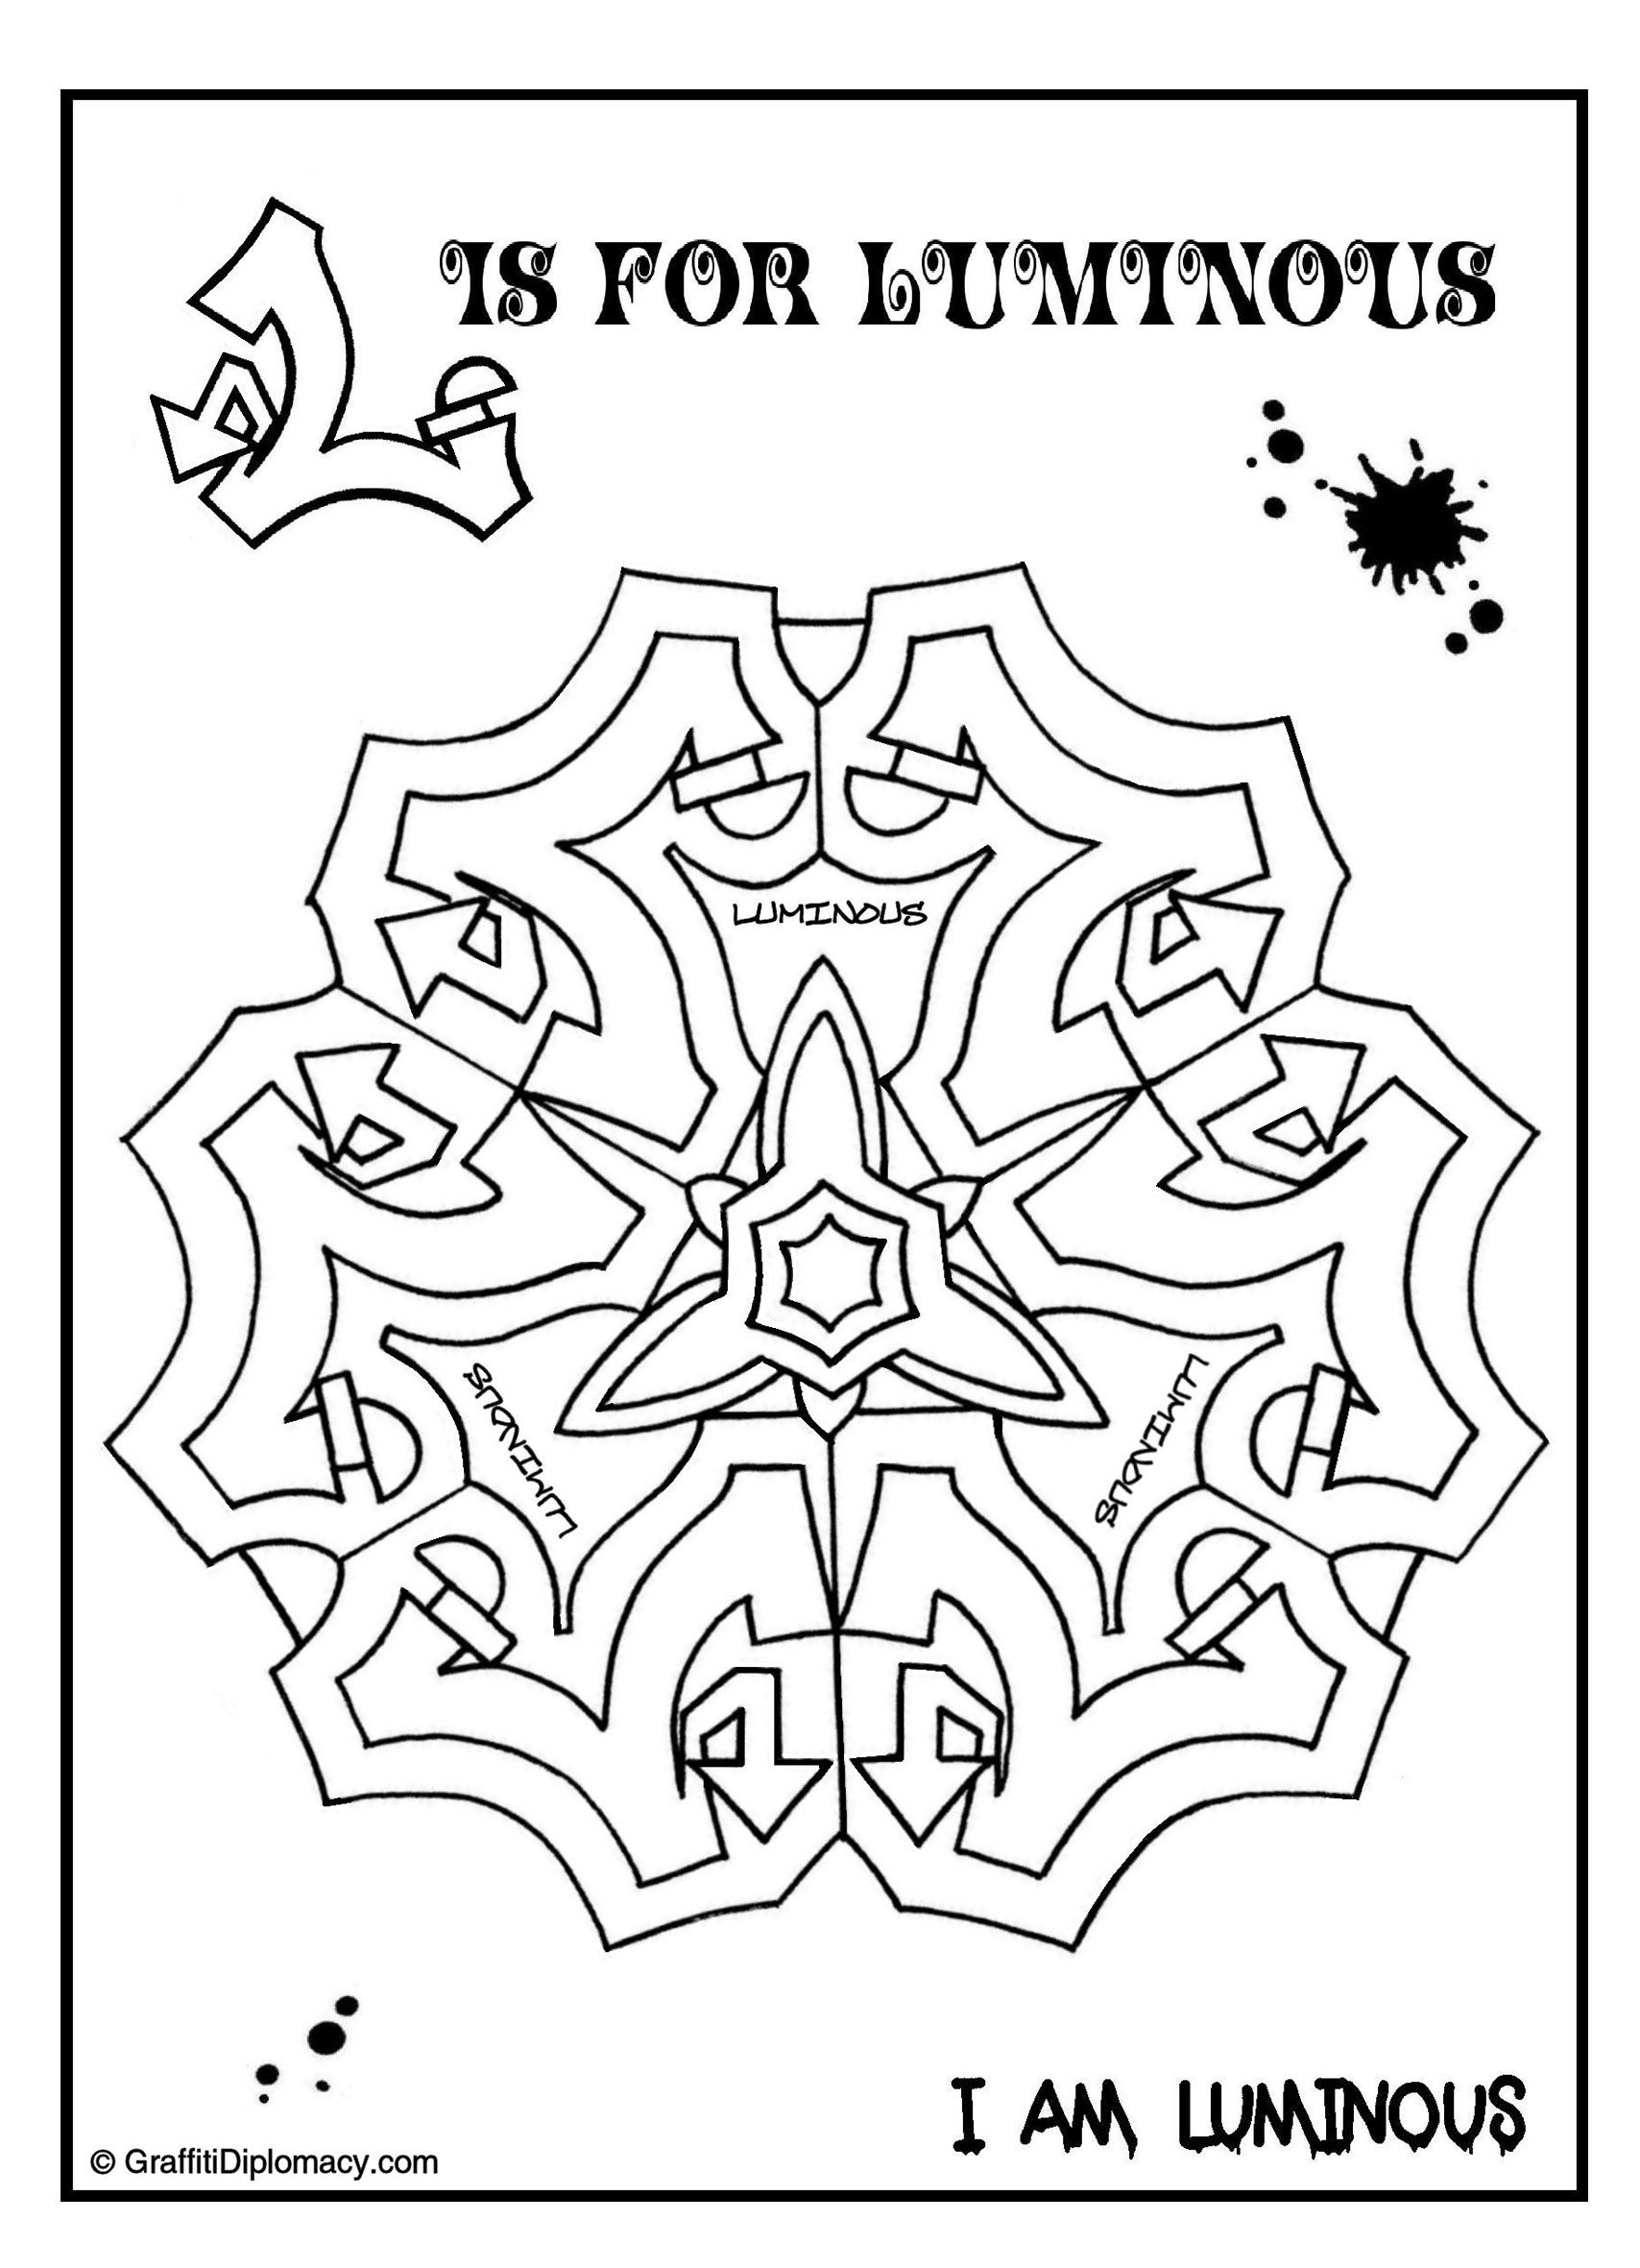 71 multicultural graffiti free coloring pages 8